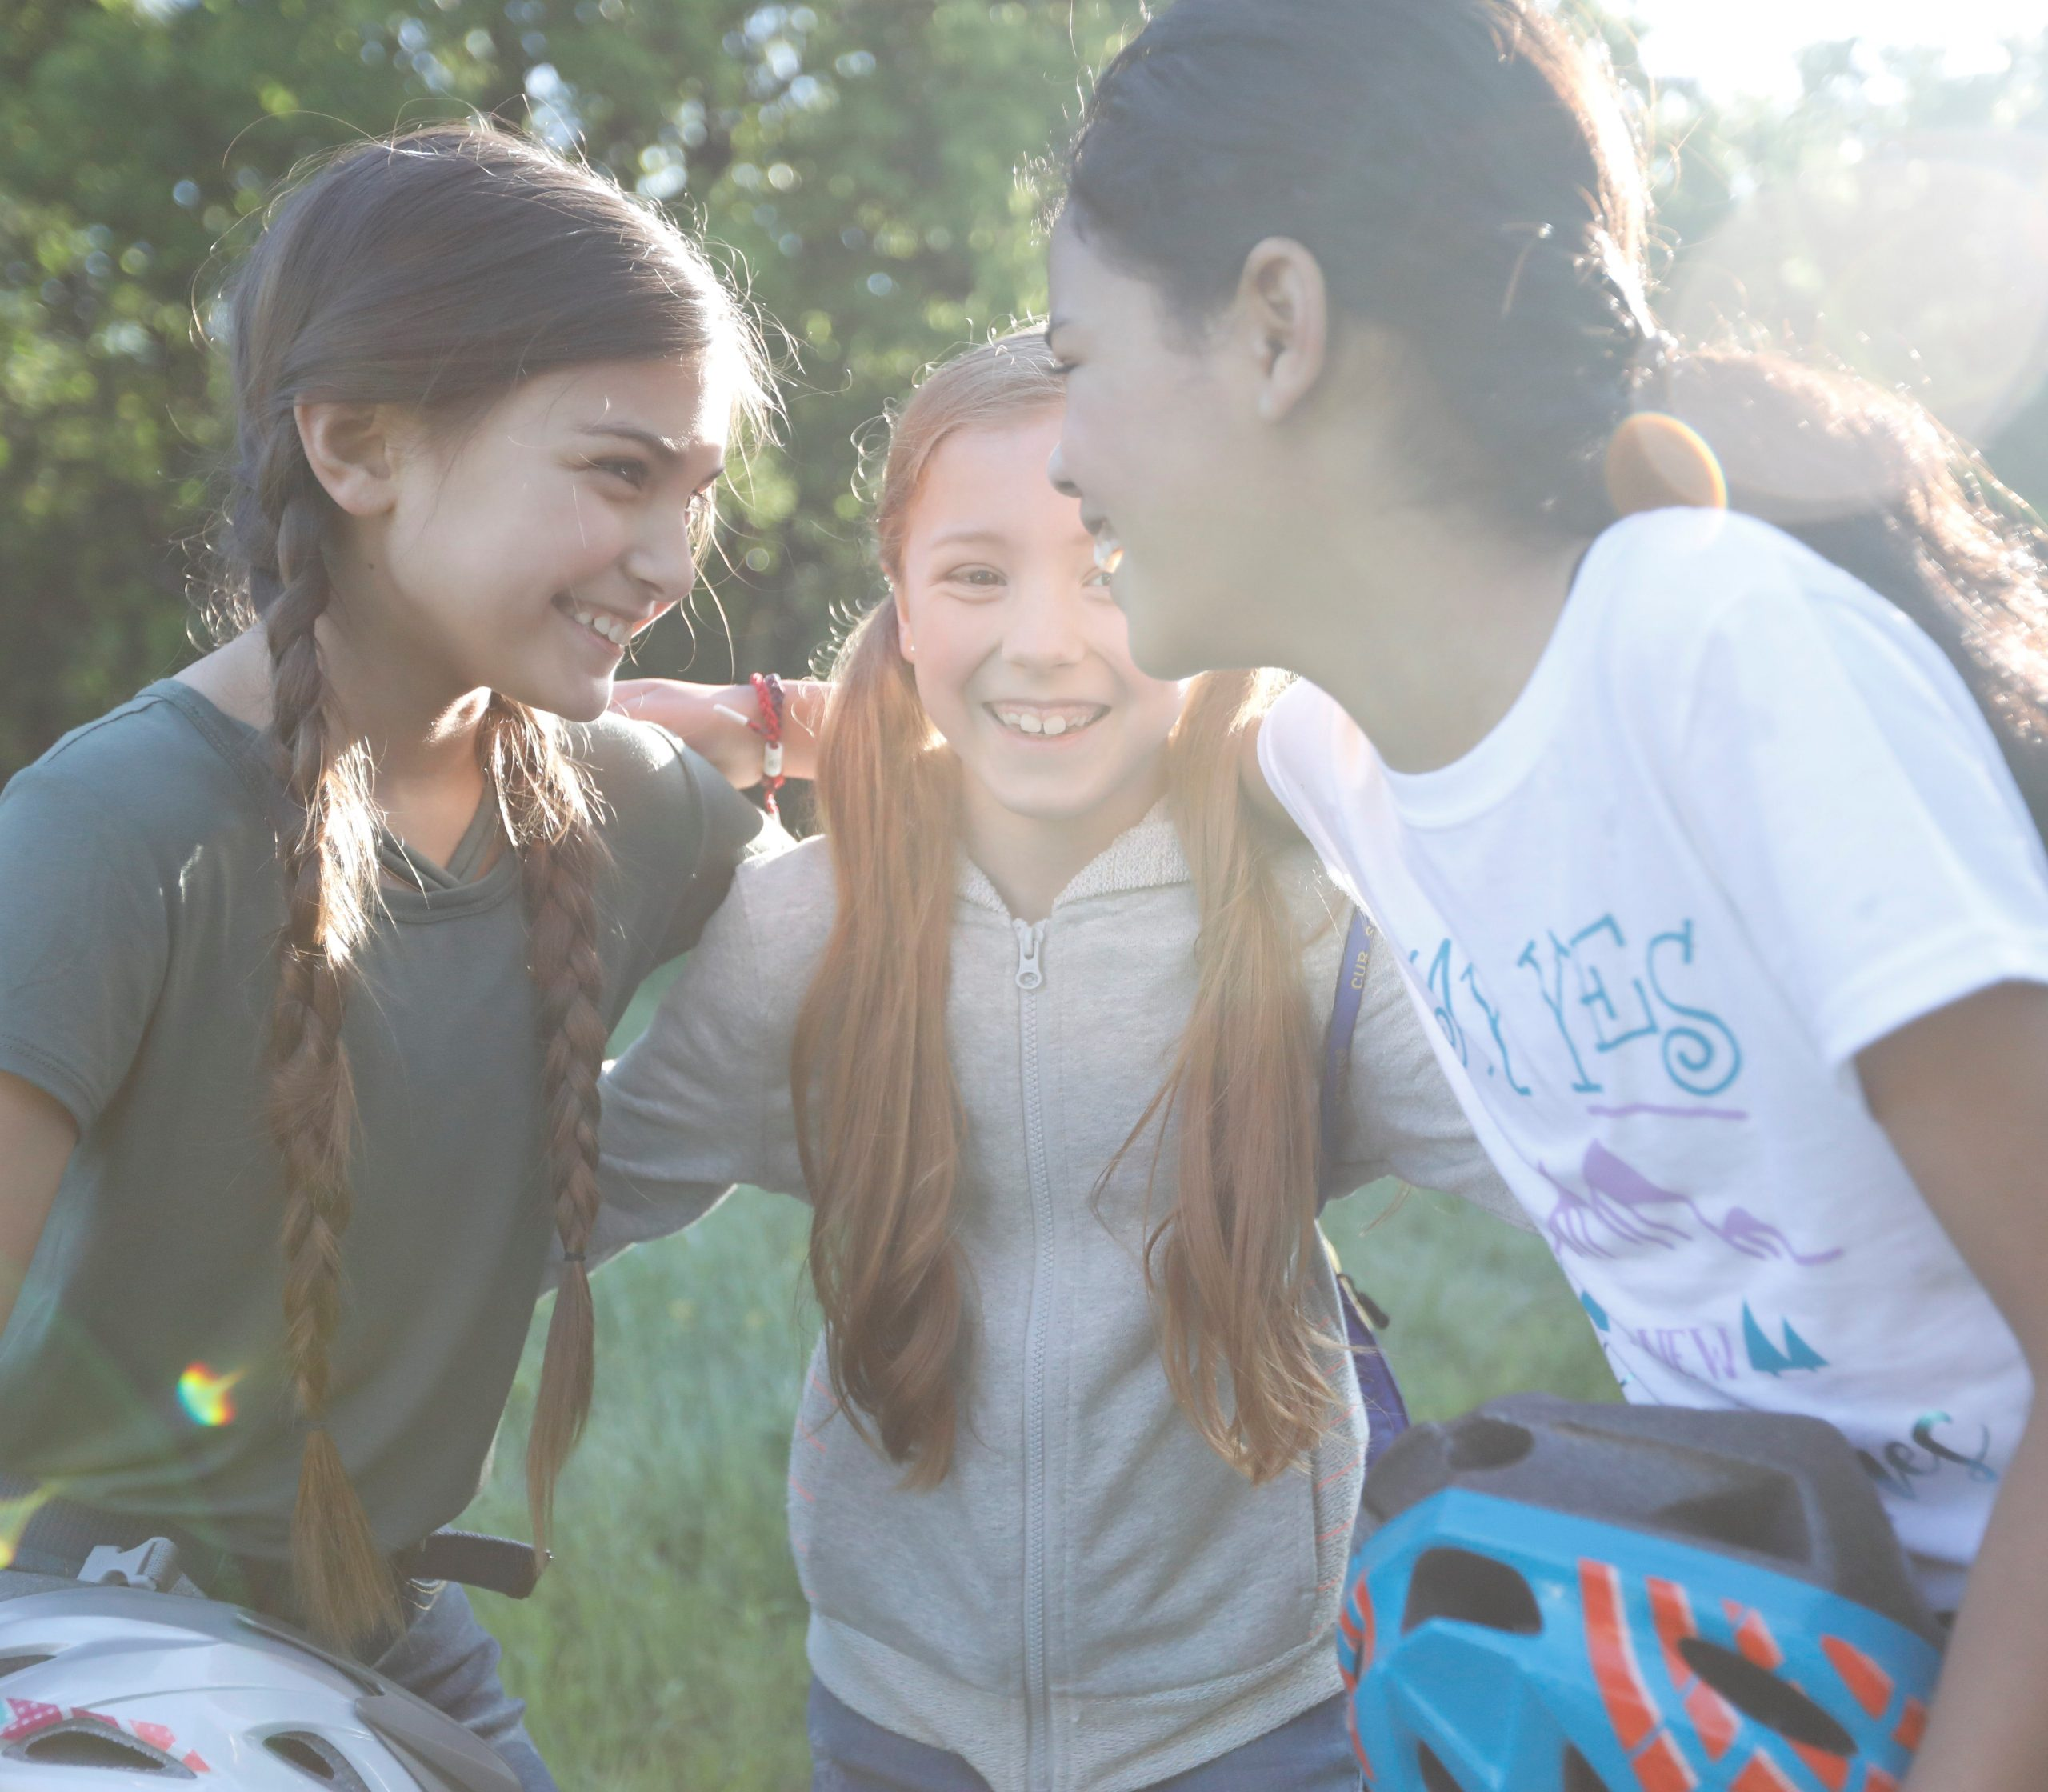 Three girls talking in a huddle after biking outside.